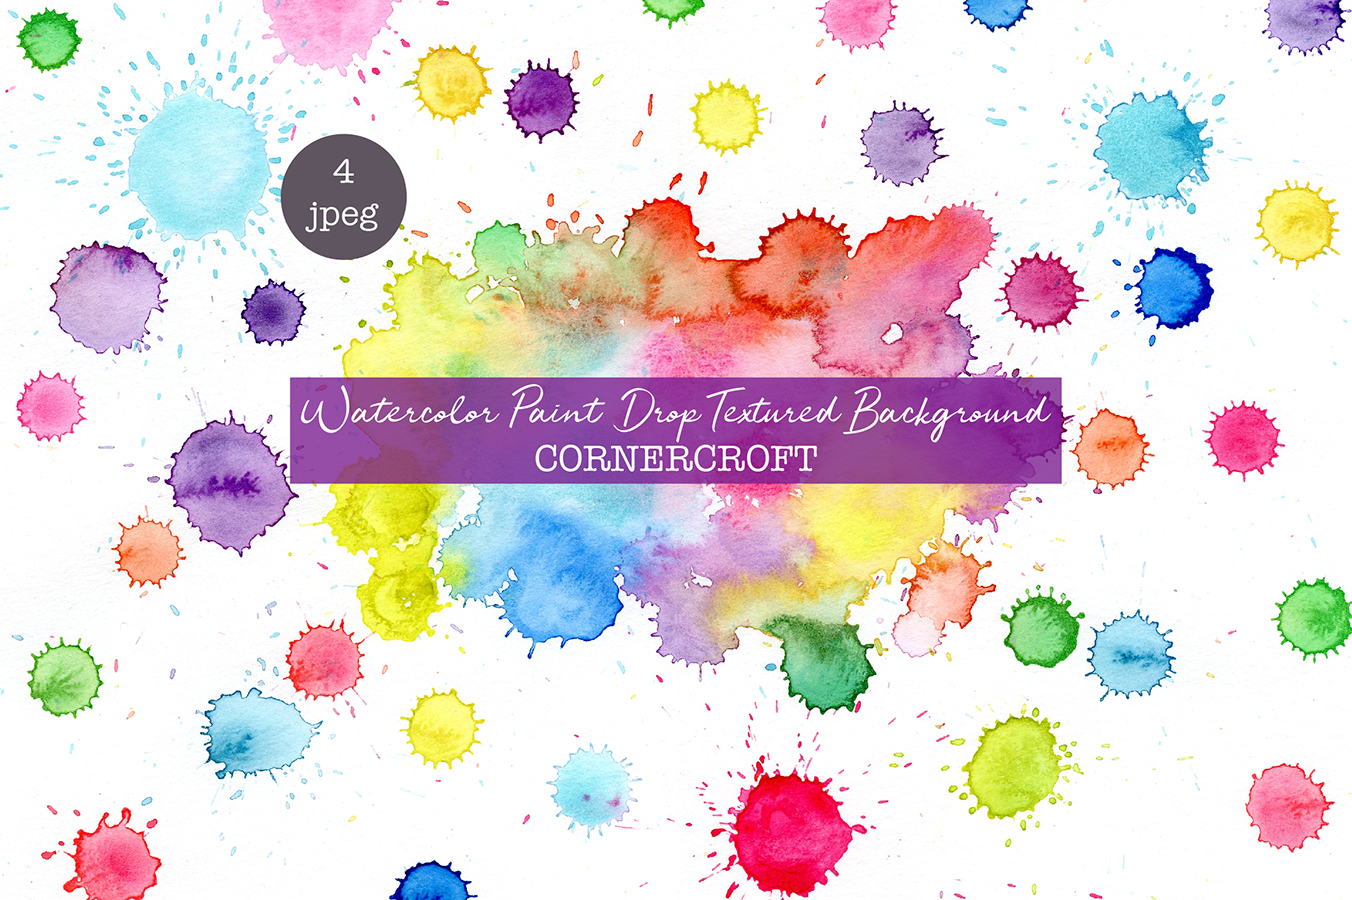 Watercolor paint drops background example image 1